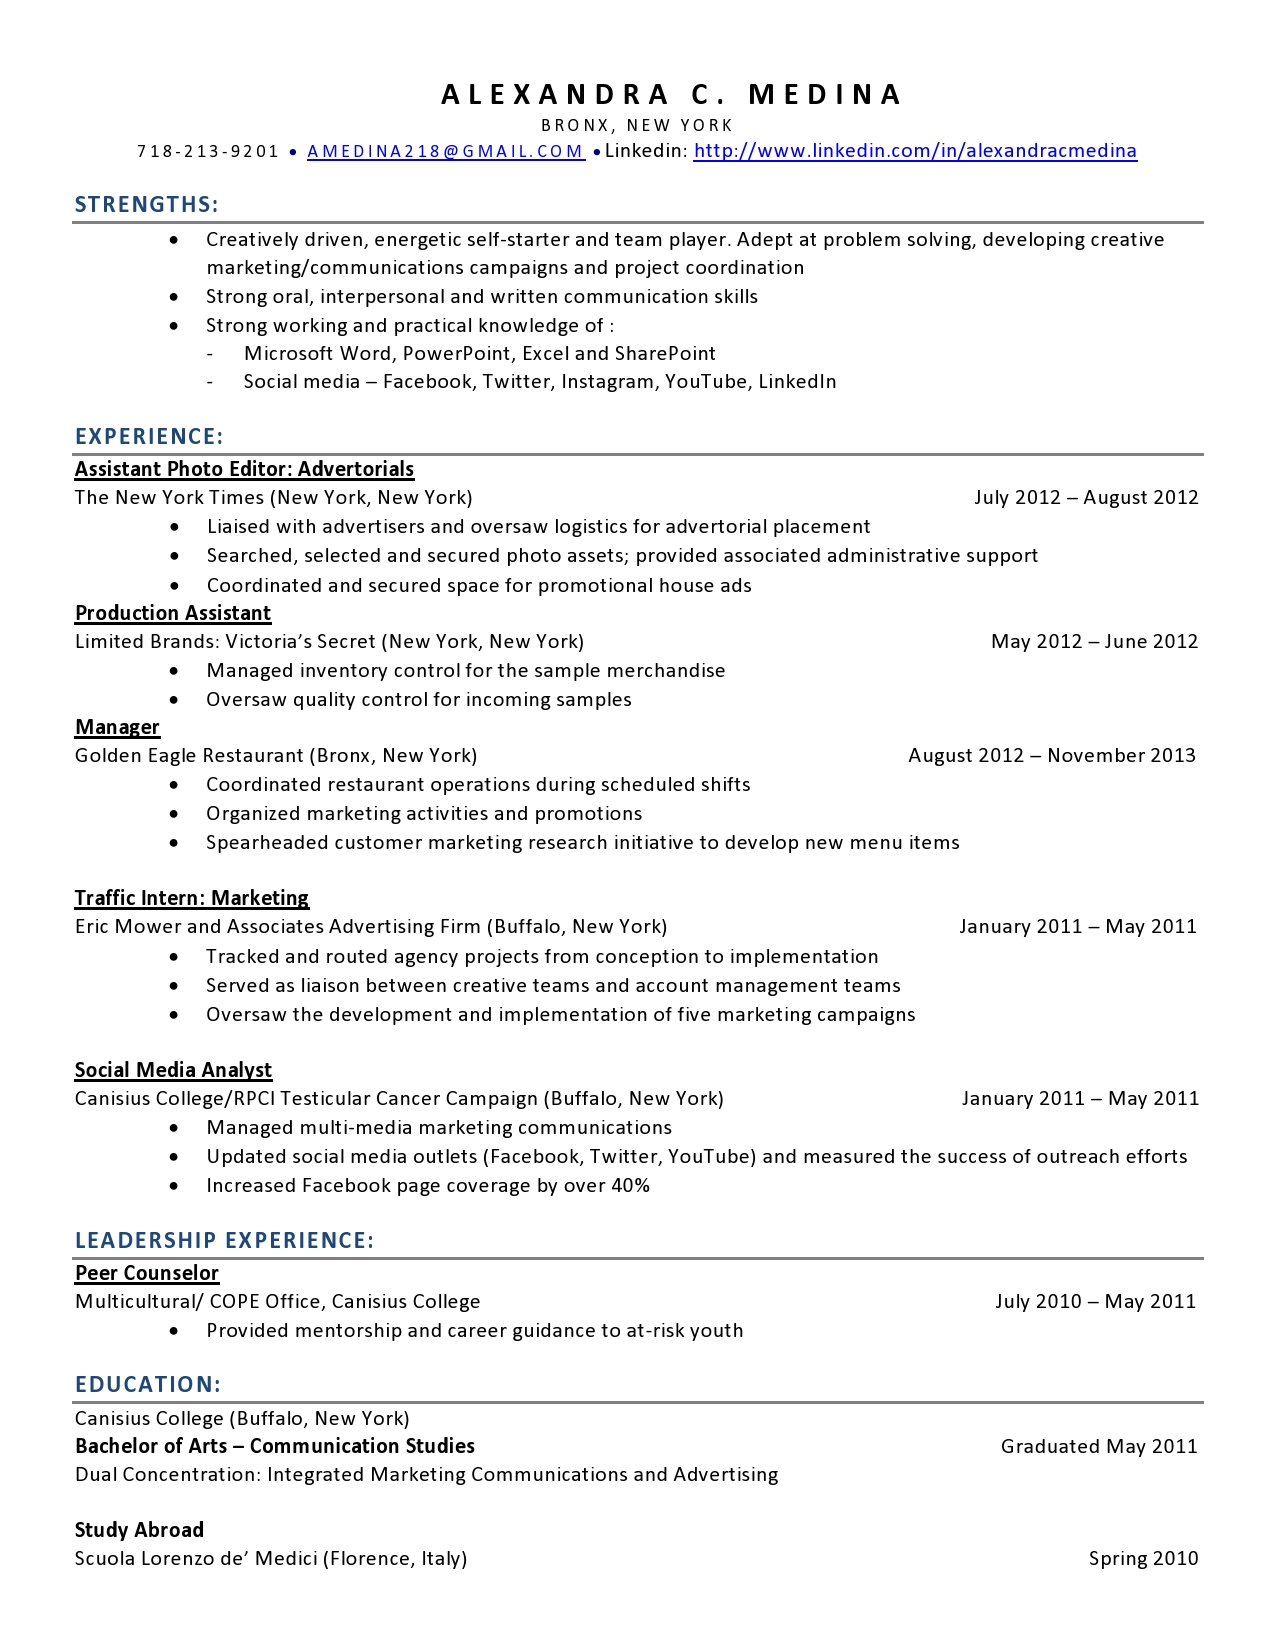 freelance writer resume samples visualcv resume samples database free sample resume cover ttu resume builder beginner